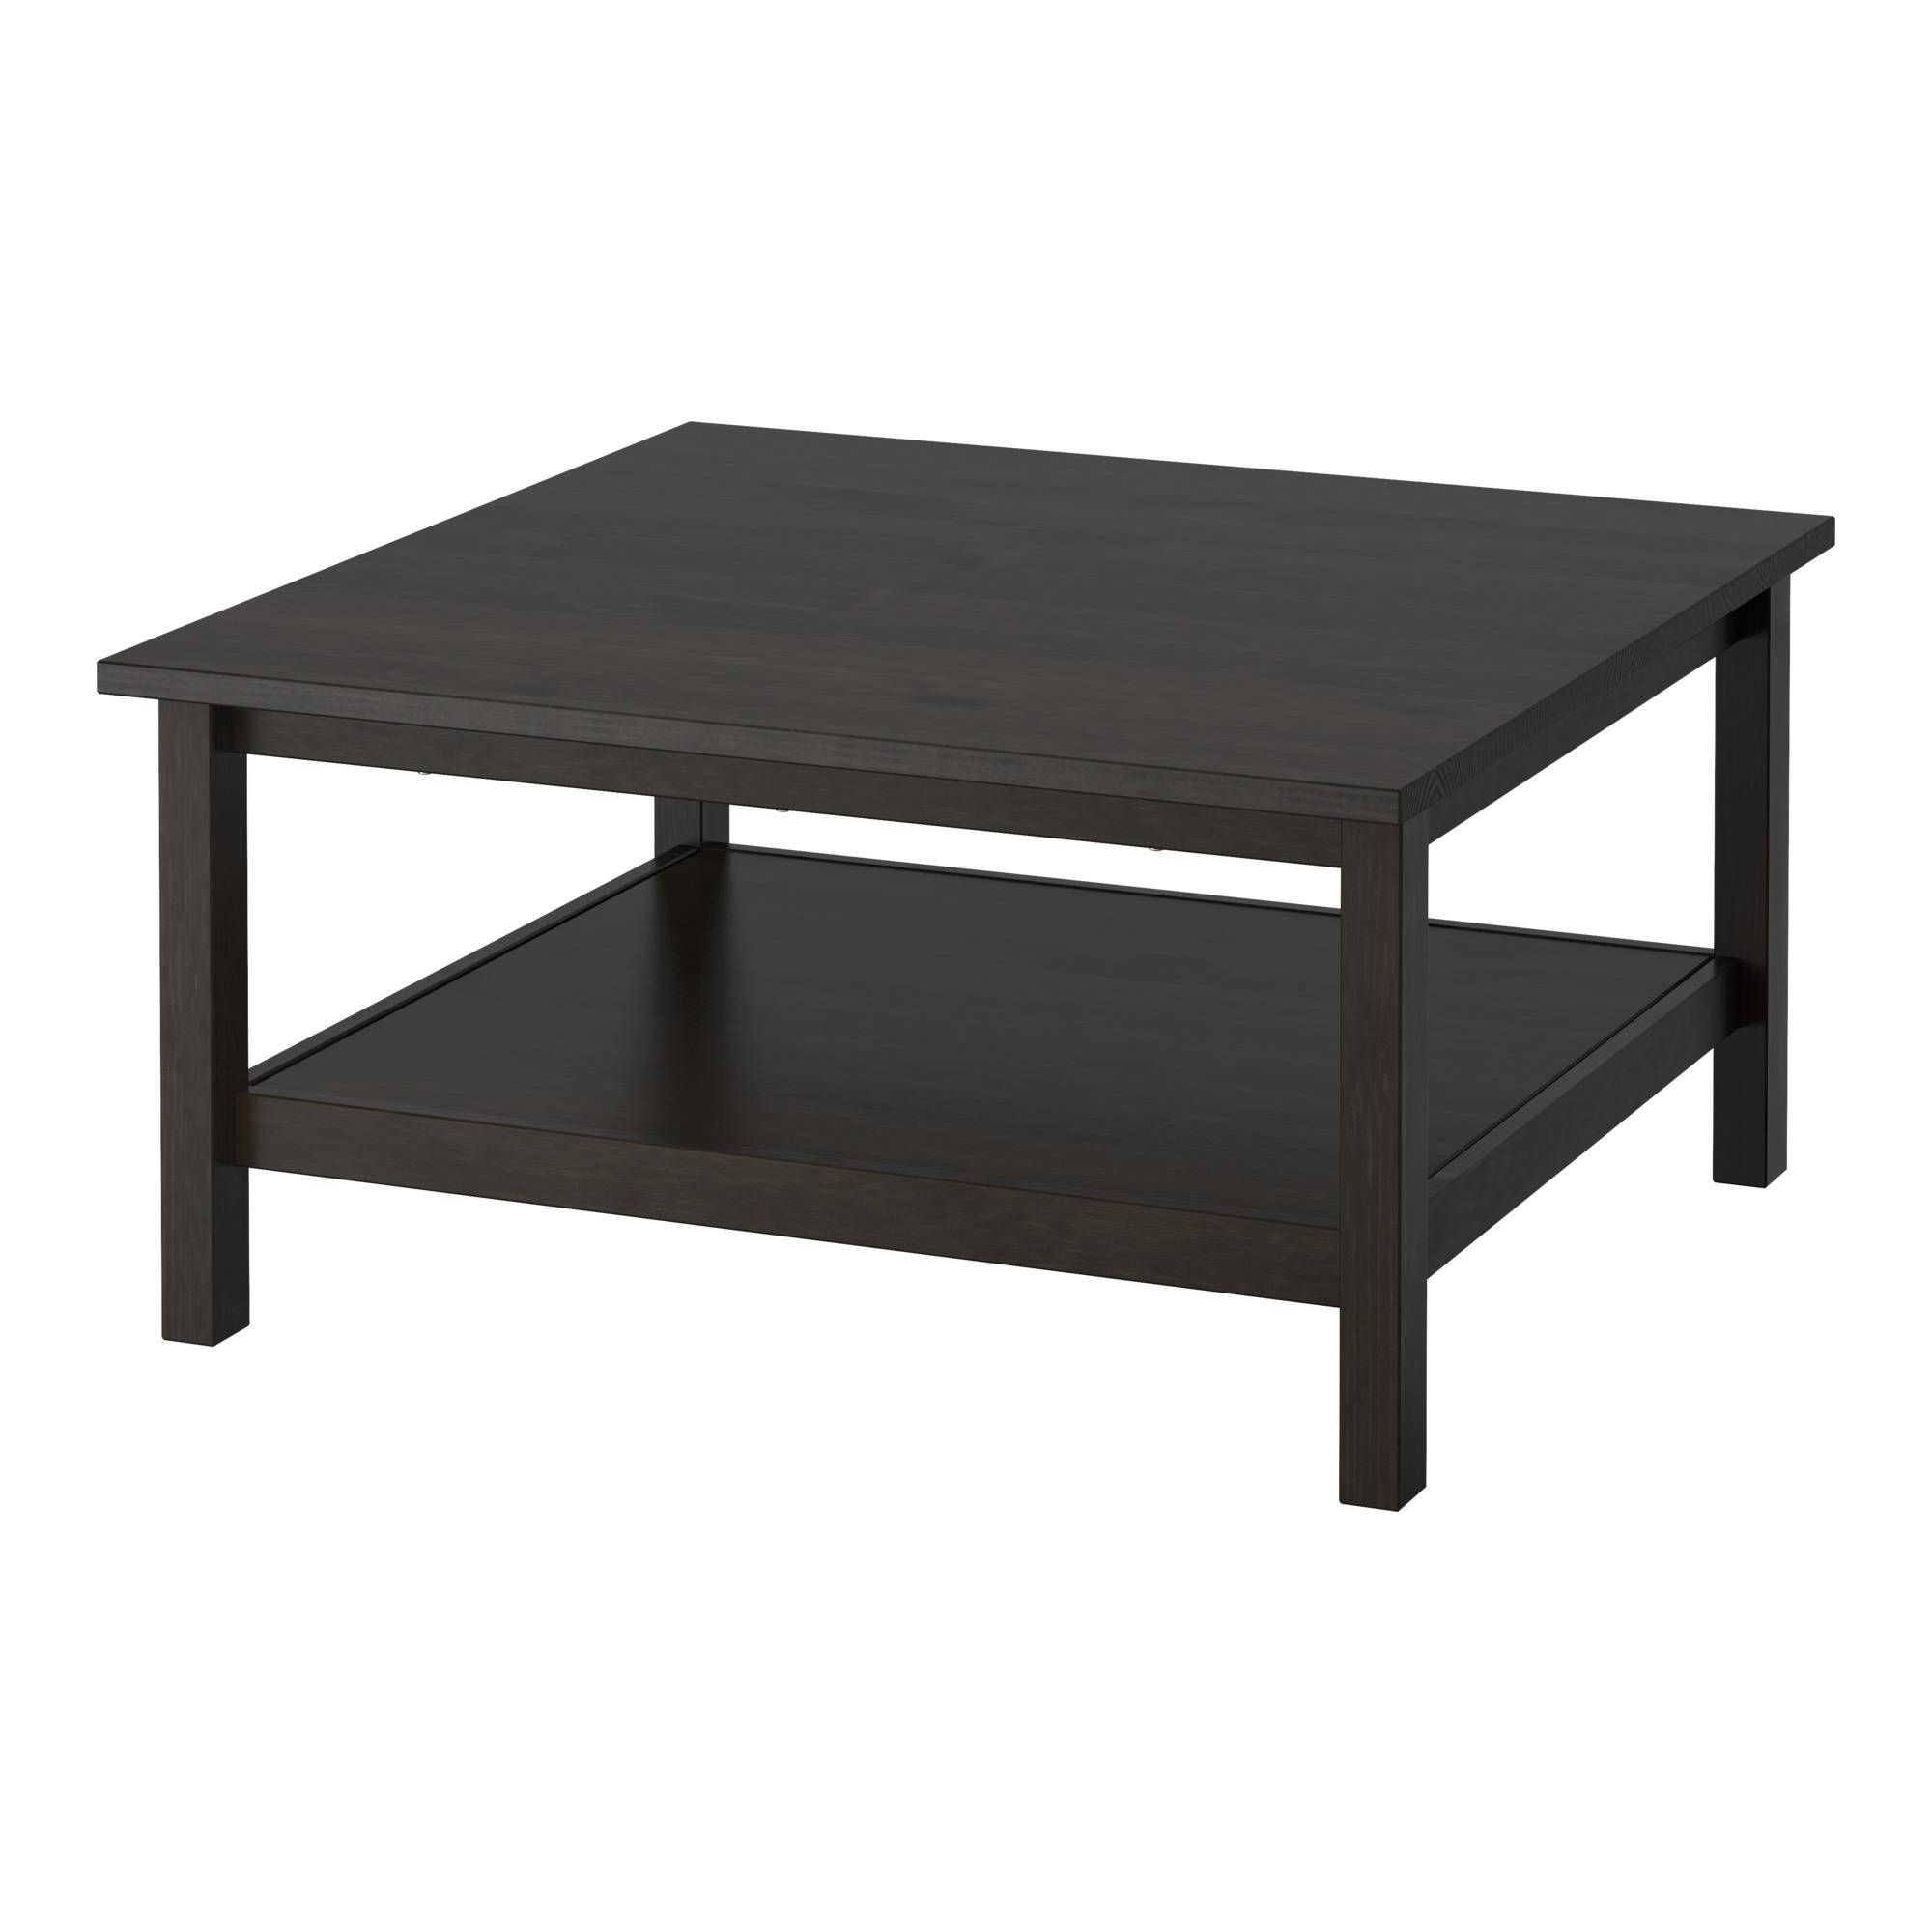 Hemnes Coffee Table - Black-Brown - Ikea with Elephant Glass Top Coffee Tables (Image 20 of 30)